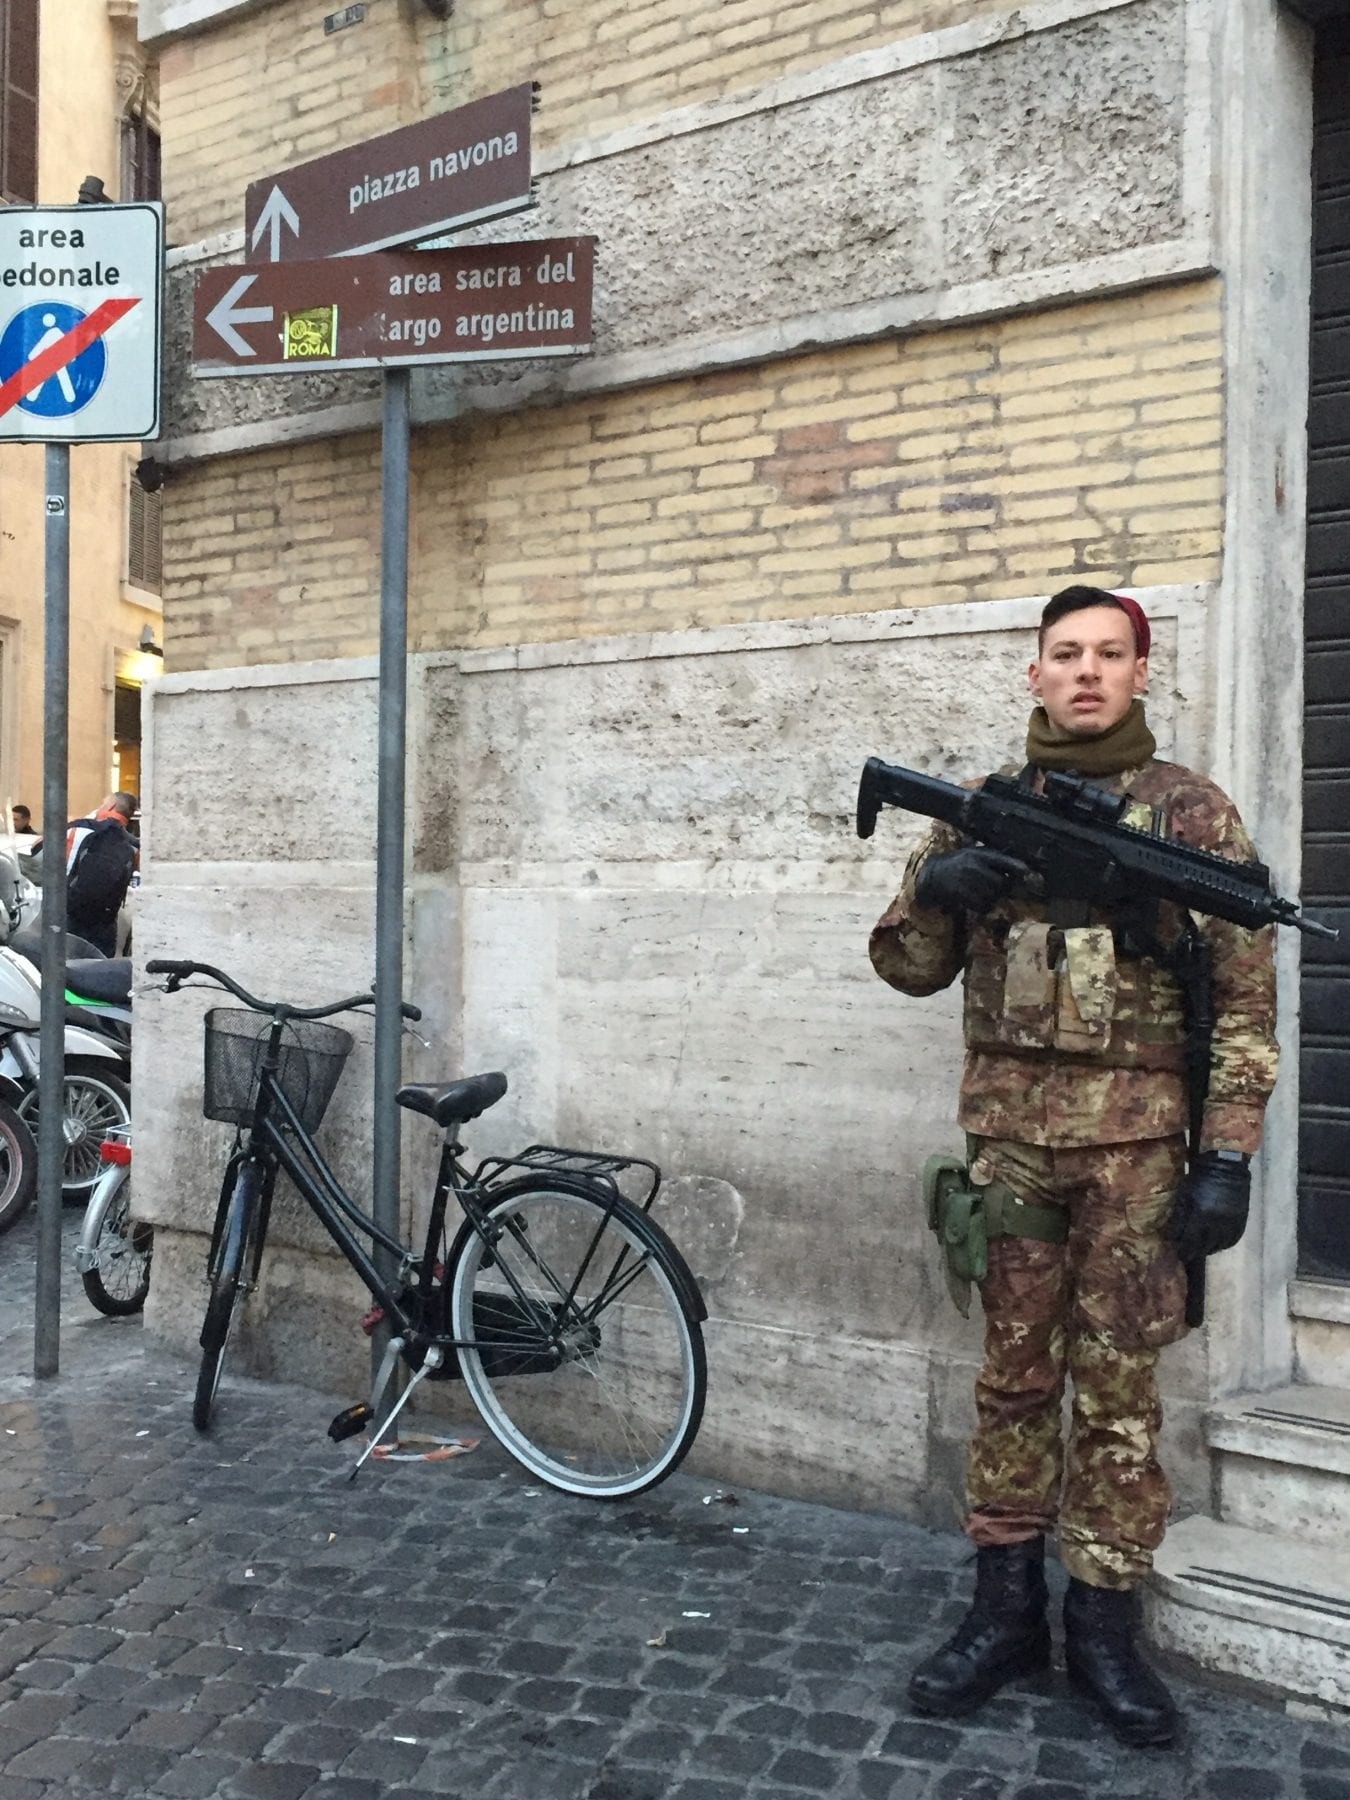 robbed thieves Rome, Italy, My Rendezvous With A Thief In Rome, Italy + How The Italian Police Responded